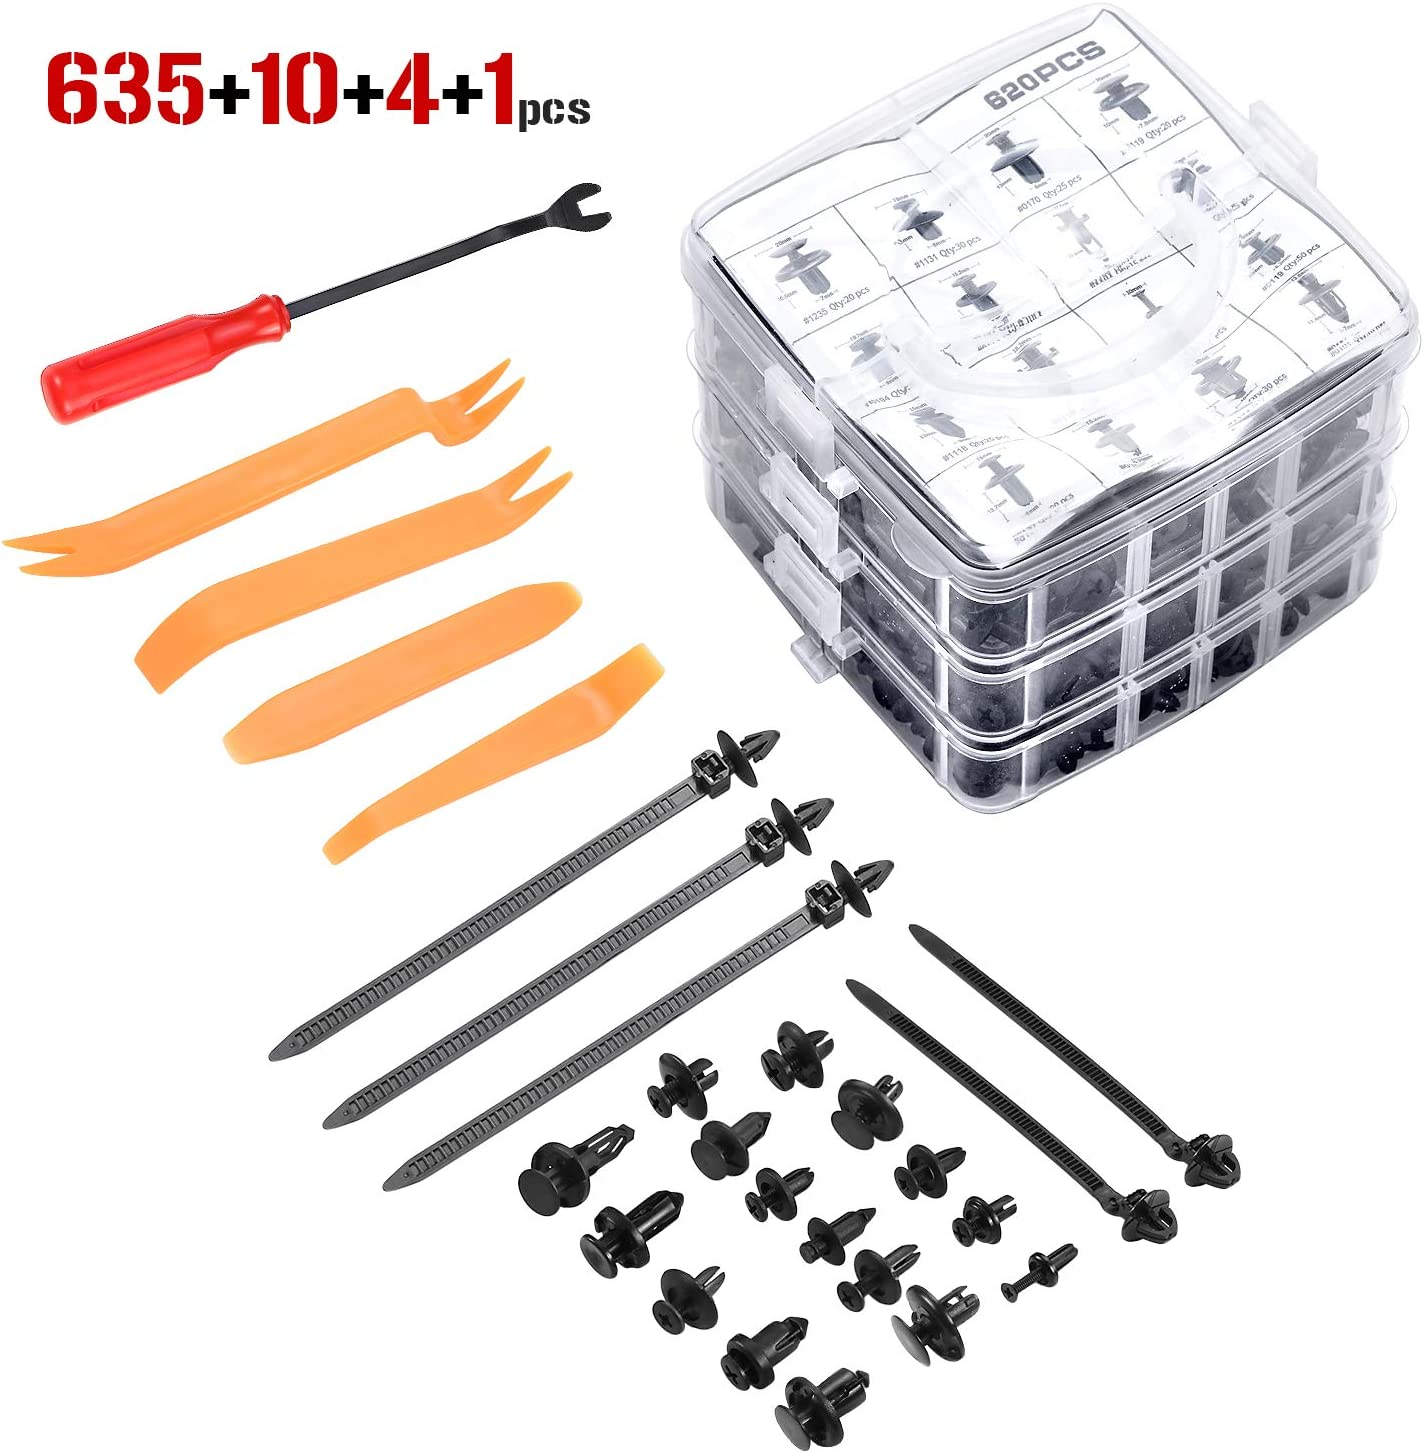 One-Stop Car Body Plastic Push Rivets Kit 36DB 635Pcs Car Retainers Clips and Fasteners Removal 16 Most Popular Sizes Auto Clips and Tools Set for Toyota GM Ford Honda Acura Chrysler